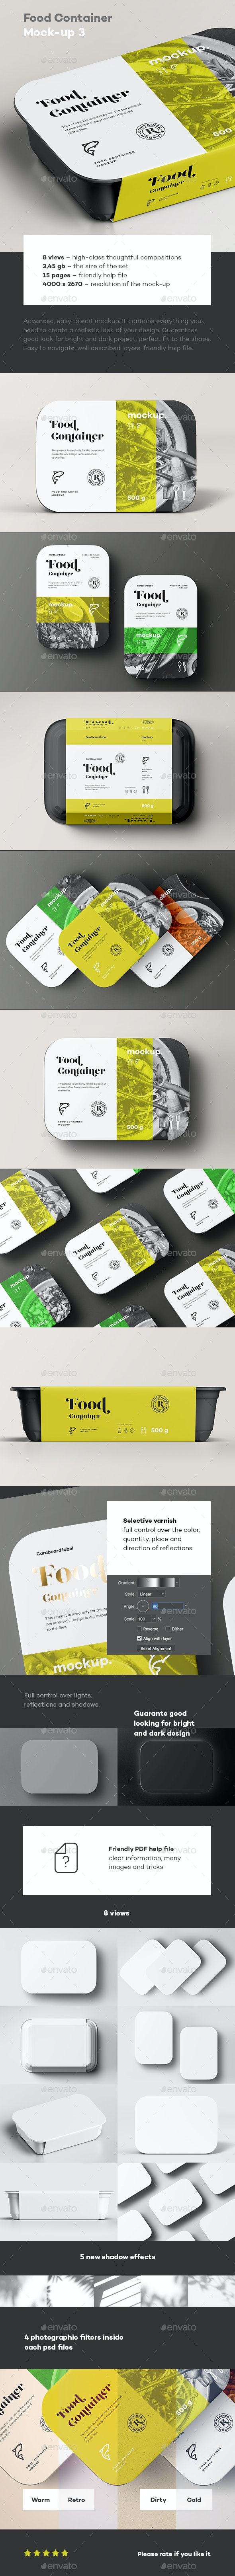 Food Container Mock-up 3 - Food and Drink Packaging